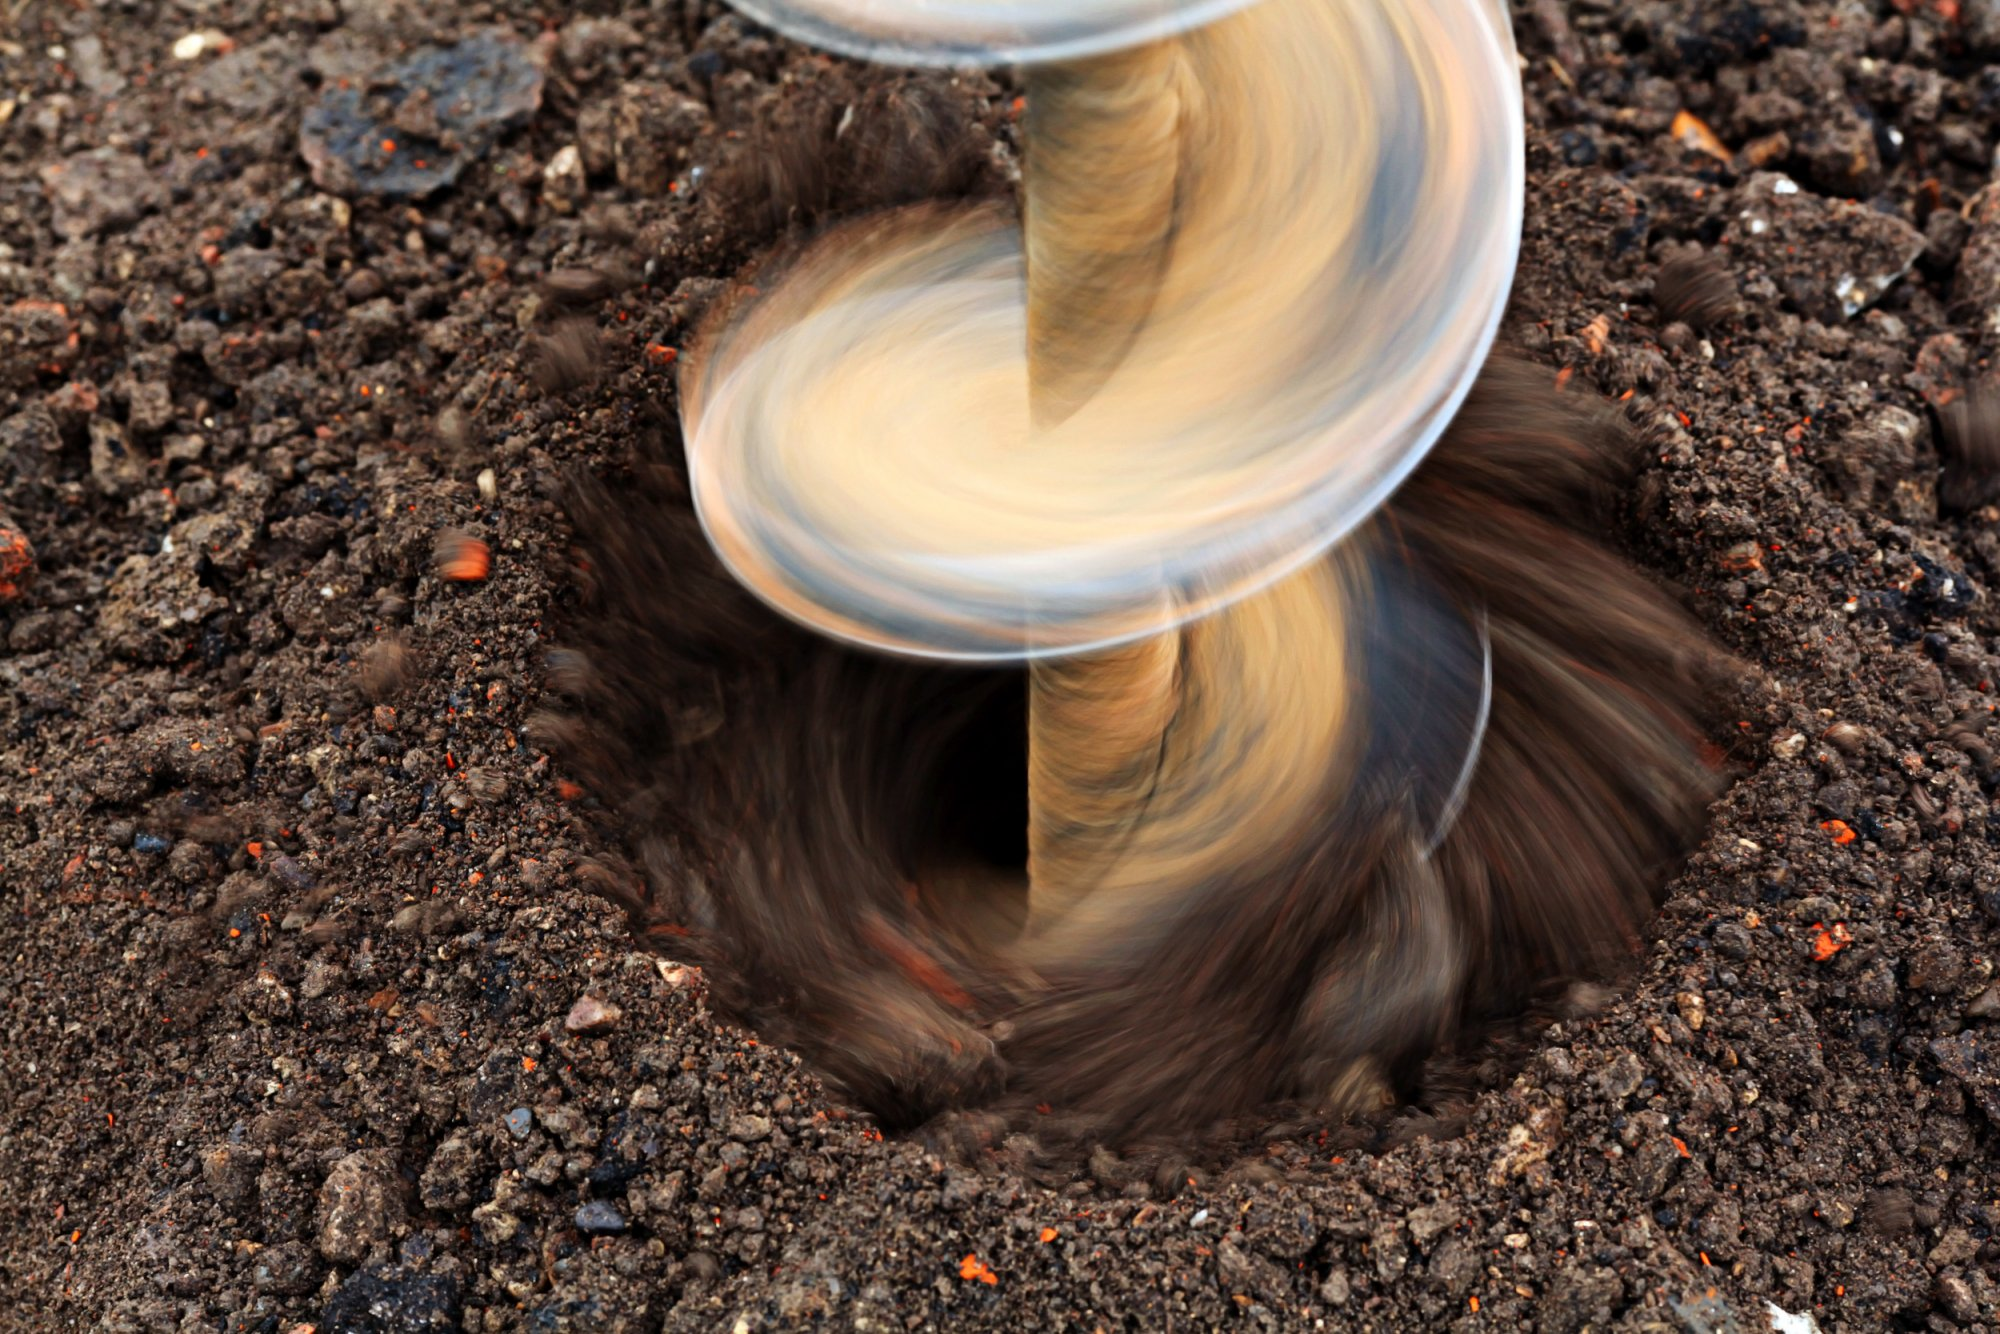 Auger being drilled